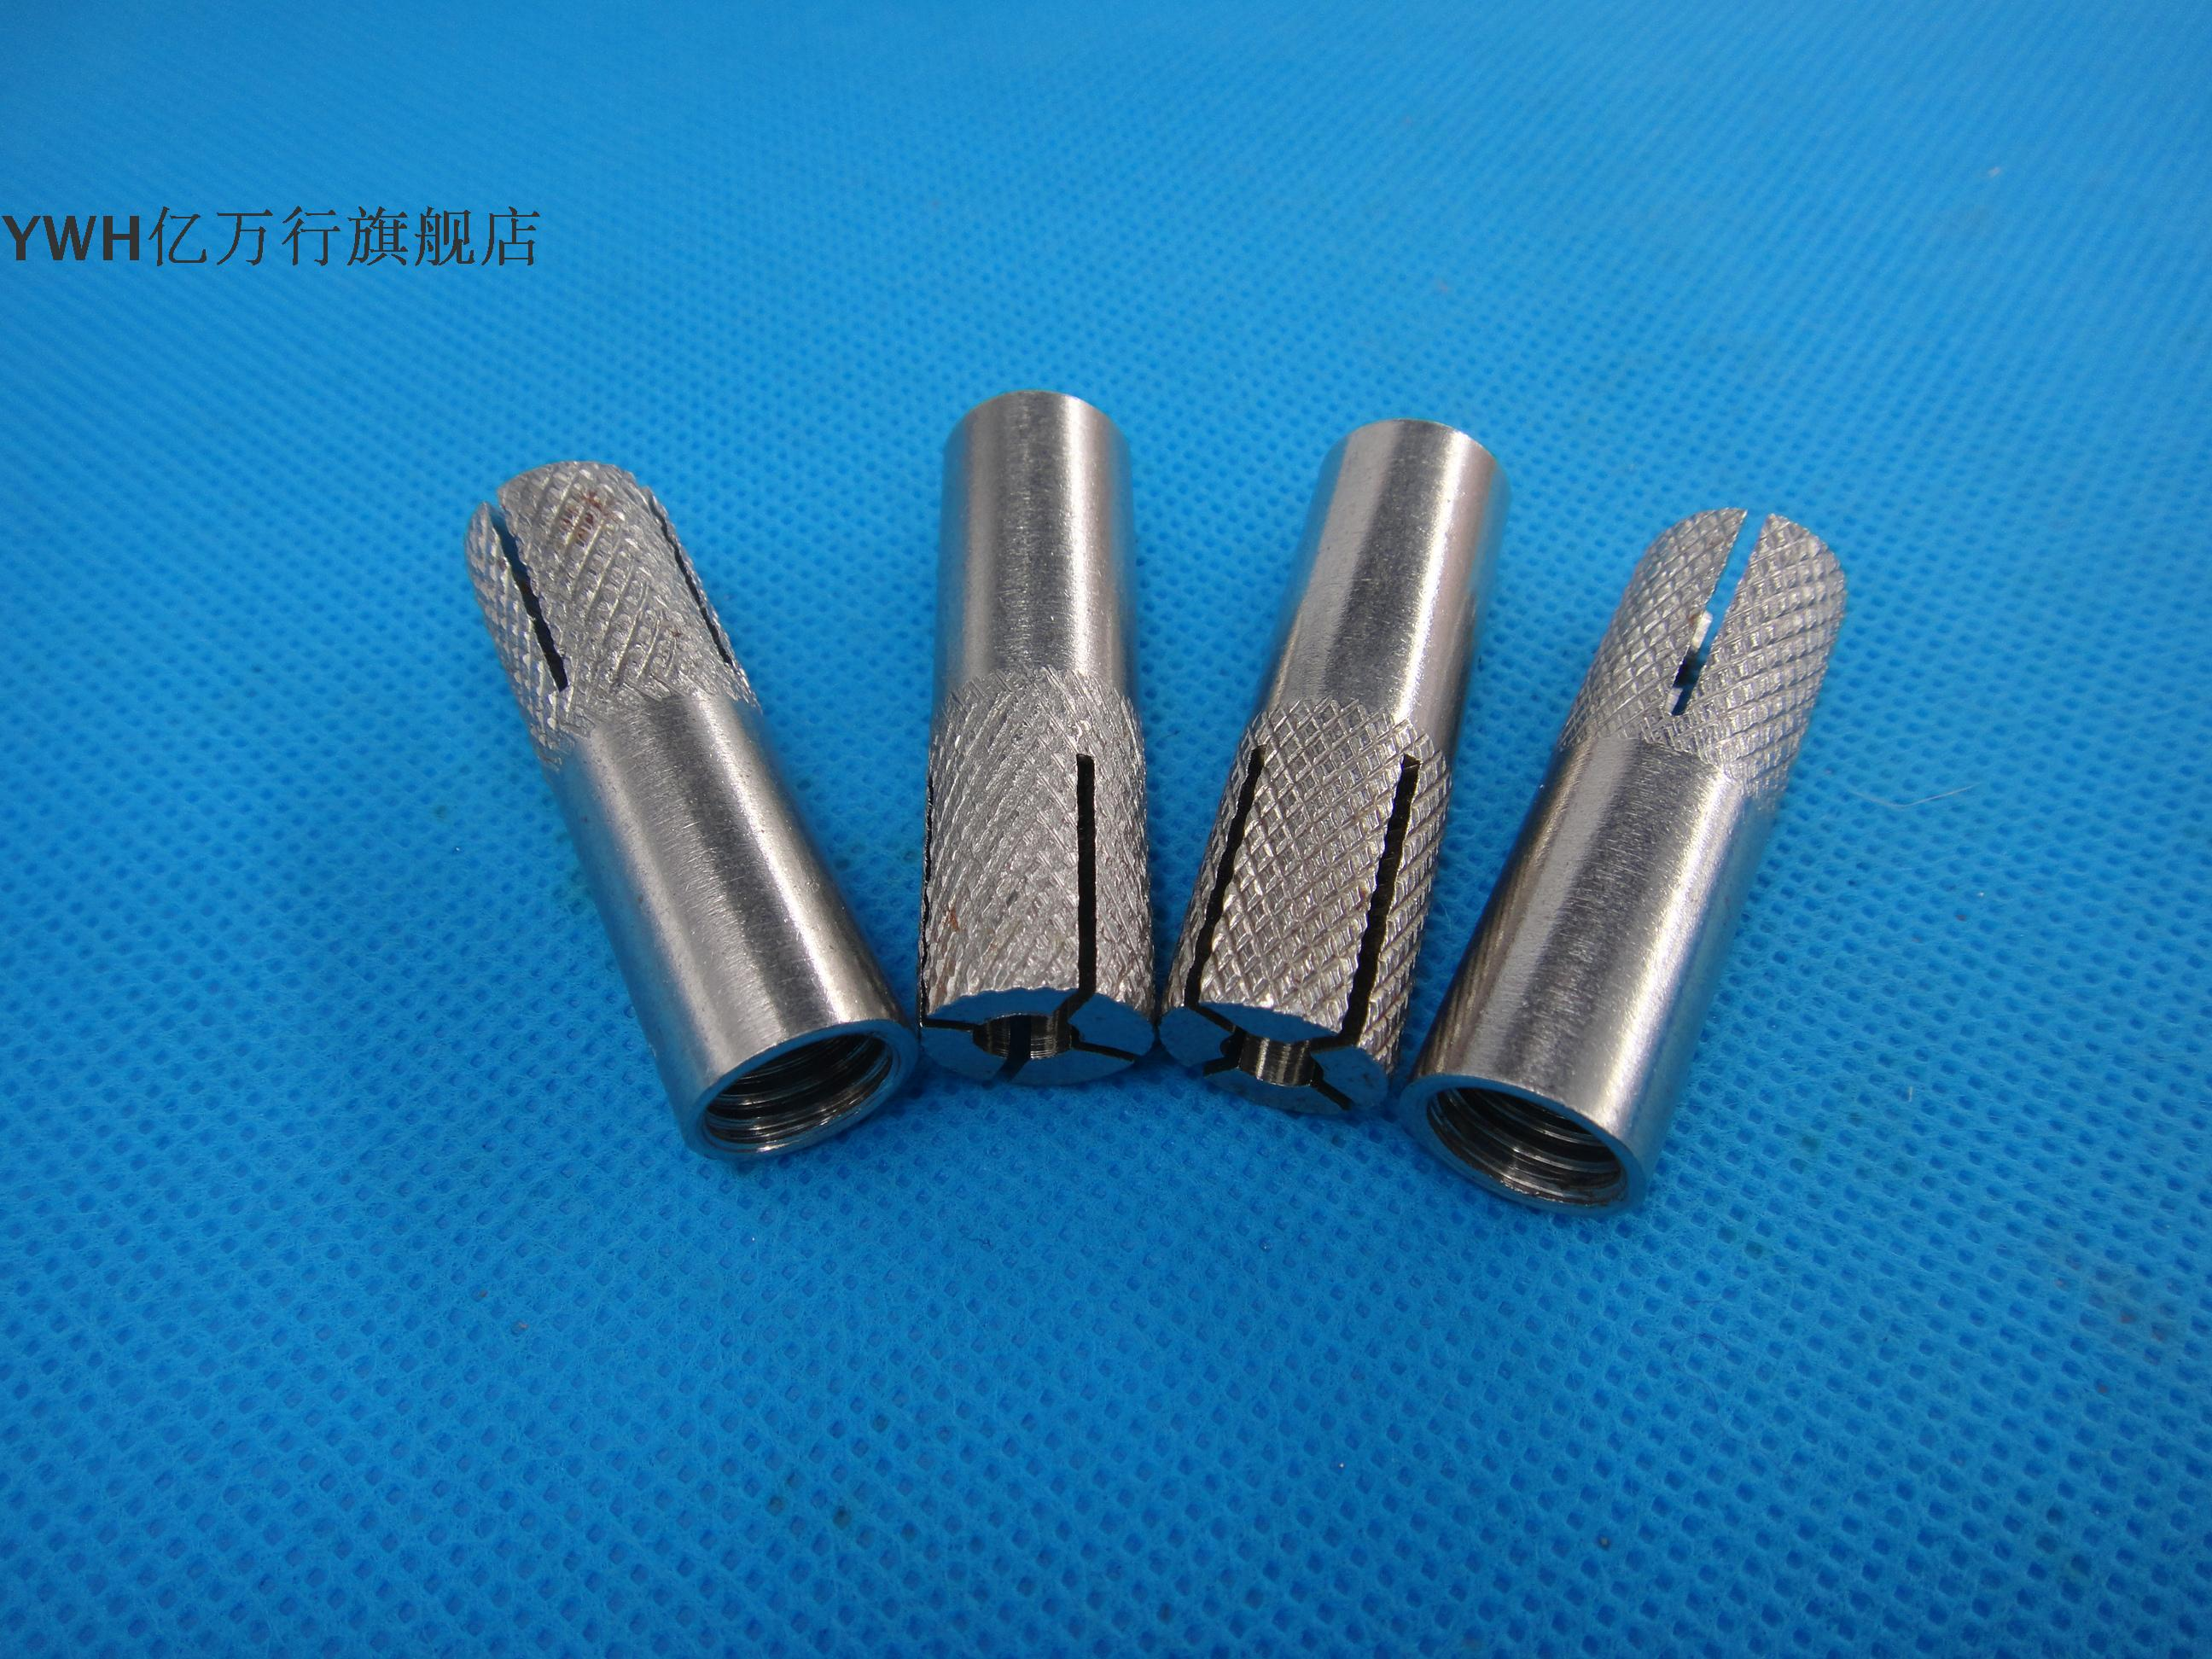 Screw 2pcs M16 M20 top Explosive Expansion Screw Implosion Expansion Bolt Drop in Anchors Screws Bolts 64-80mm Length Size: M16x64mm